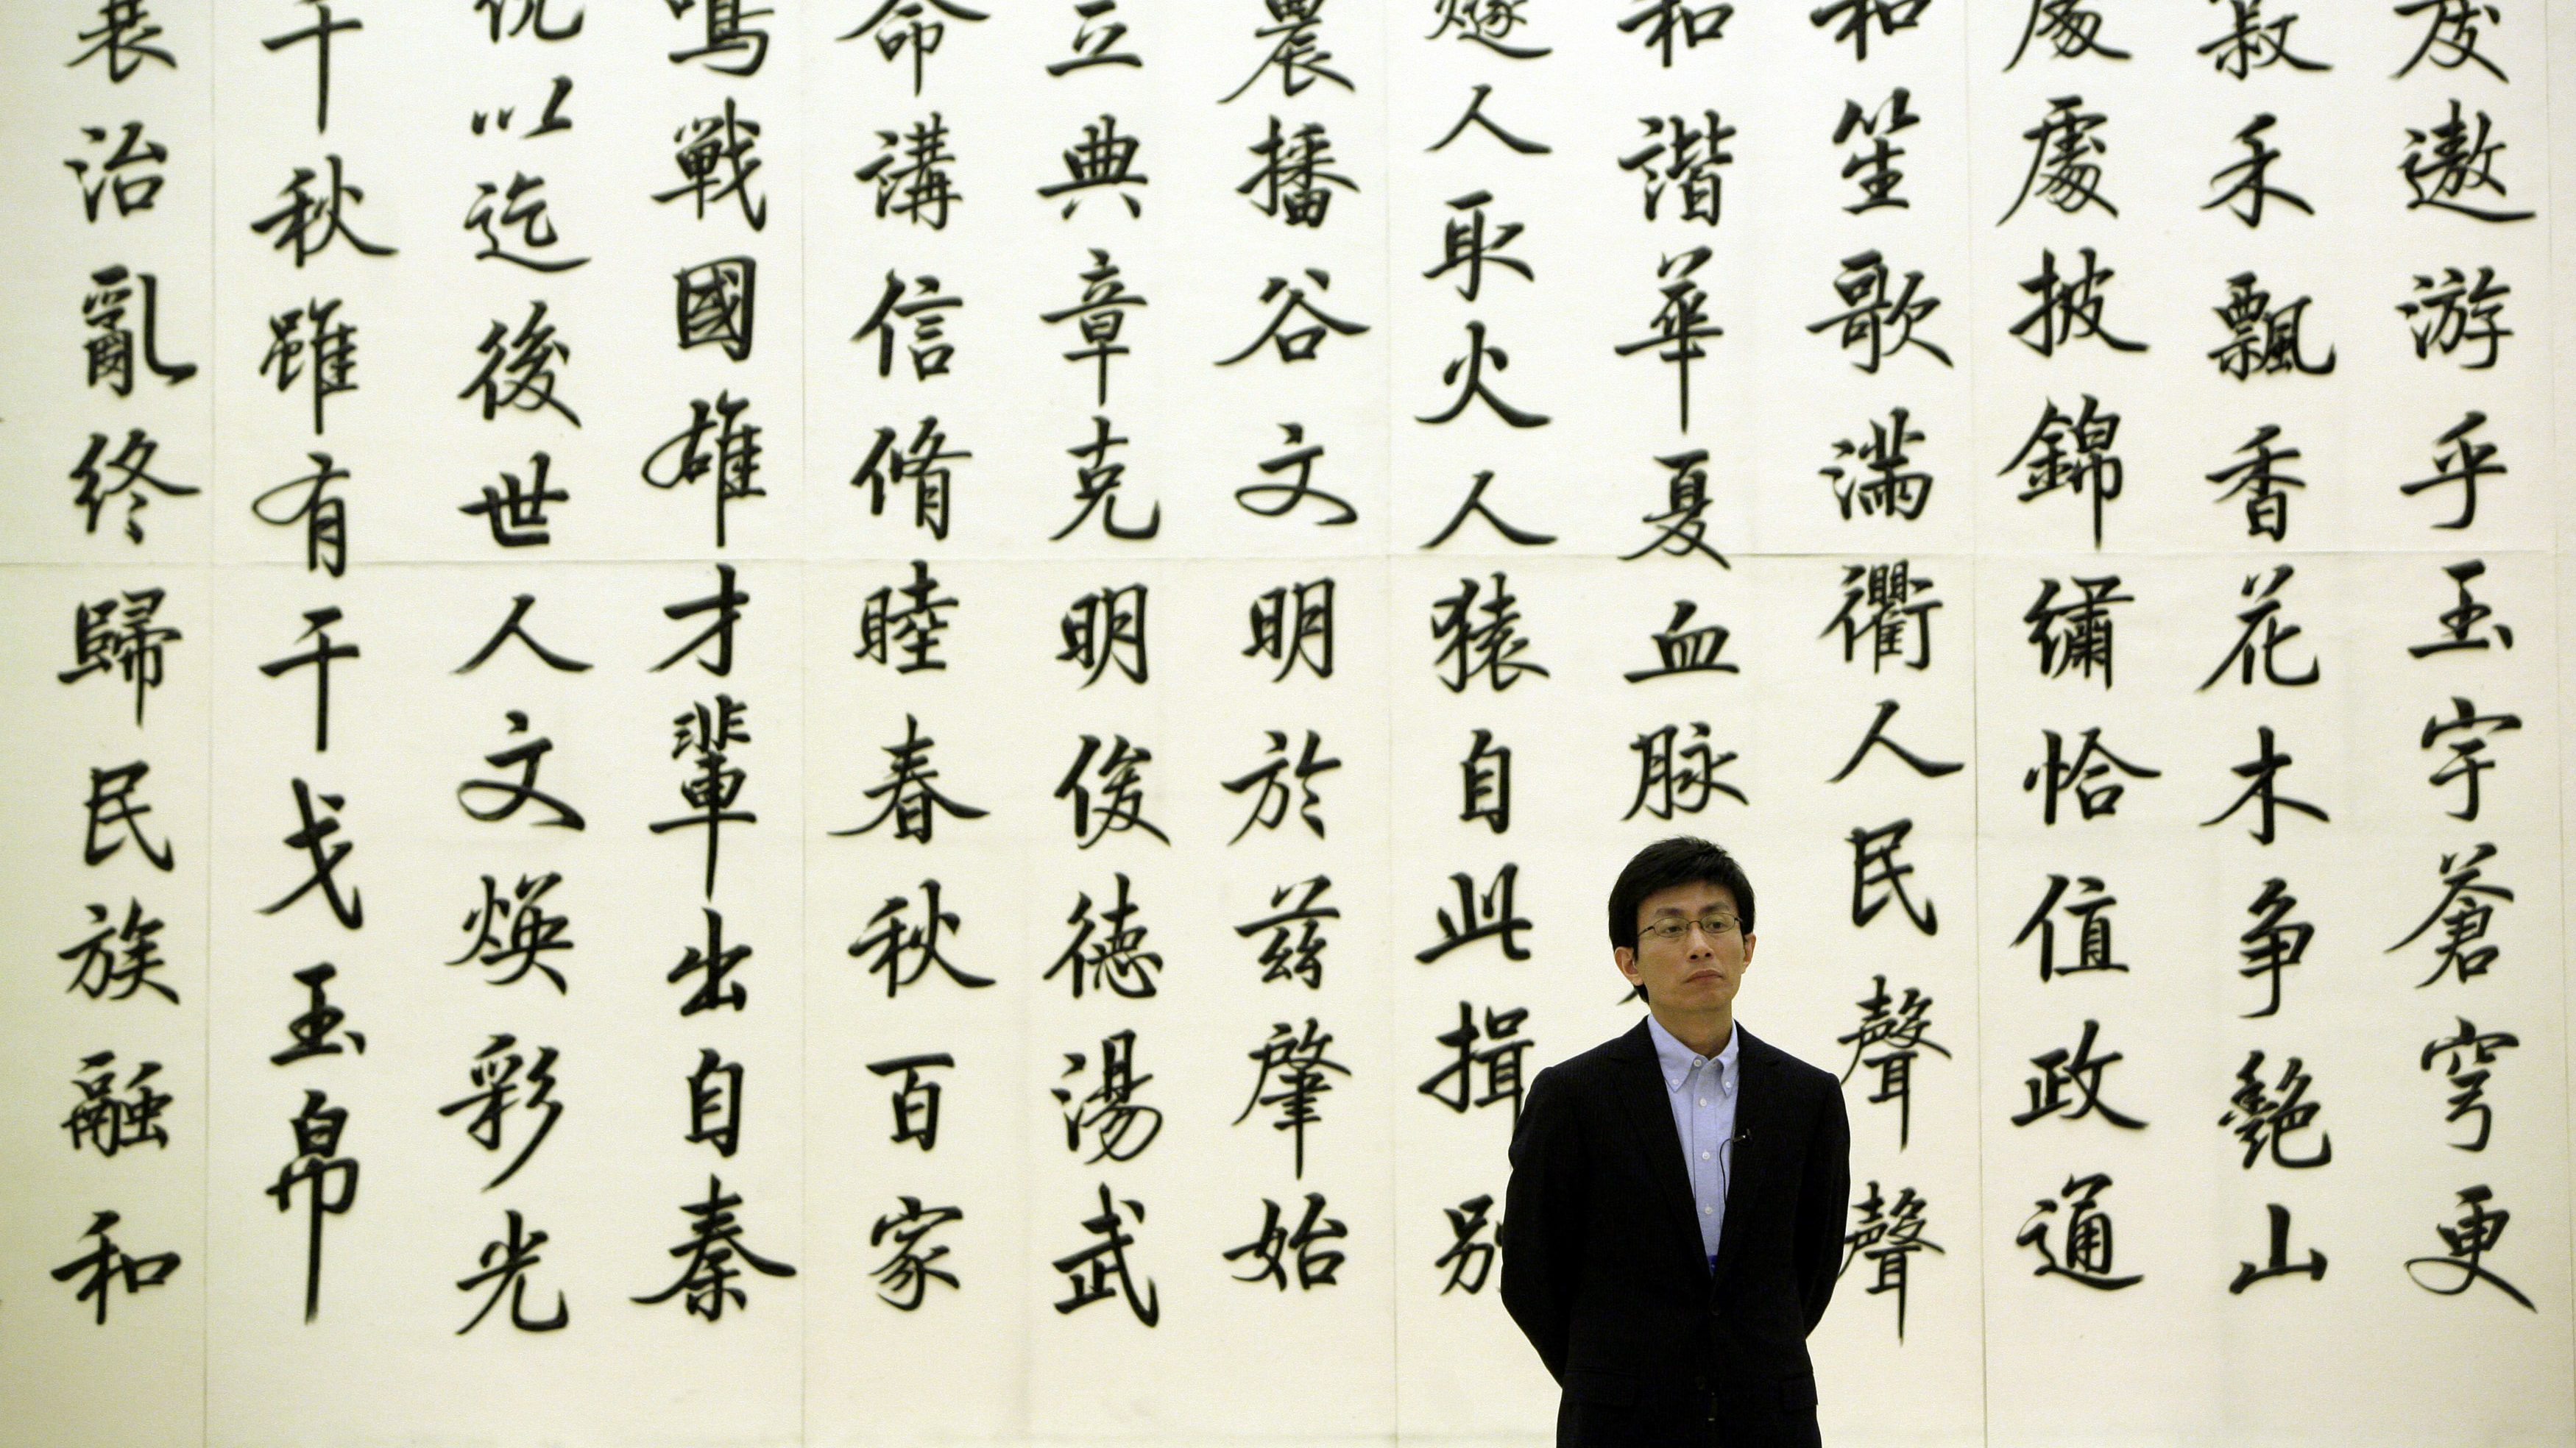 A man stands in front of a marble wall engraved with Chinese calligraphy poetry, in the Great Hall of the People, the venue of China's annual session of parliament, in Beijing March 6, 2010.